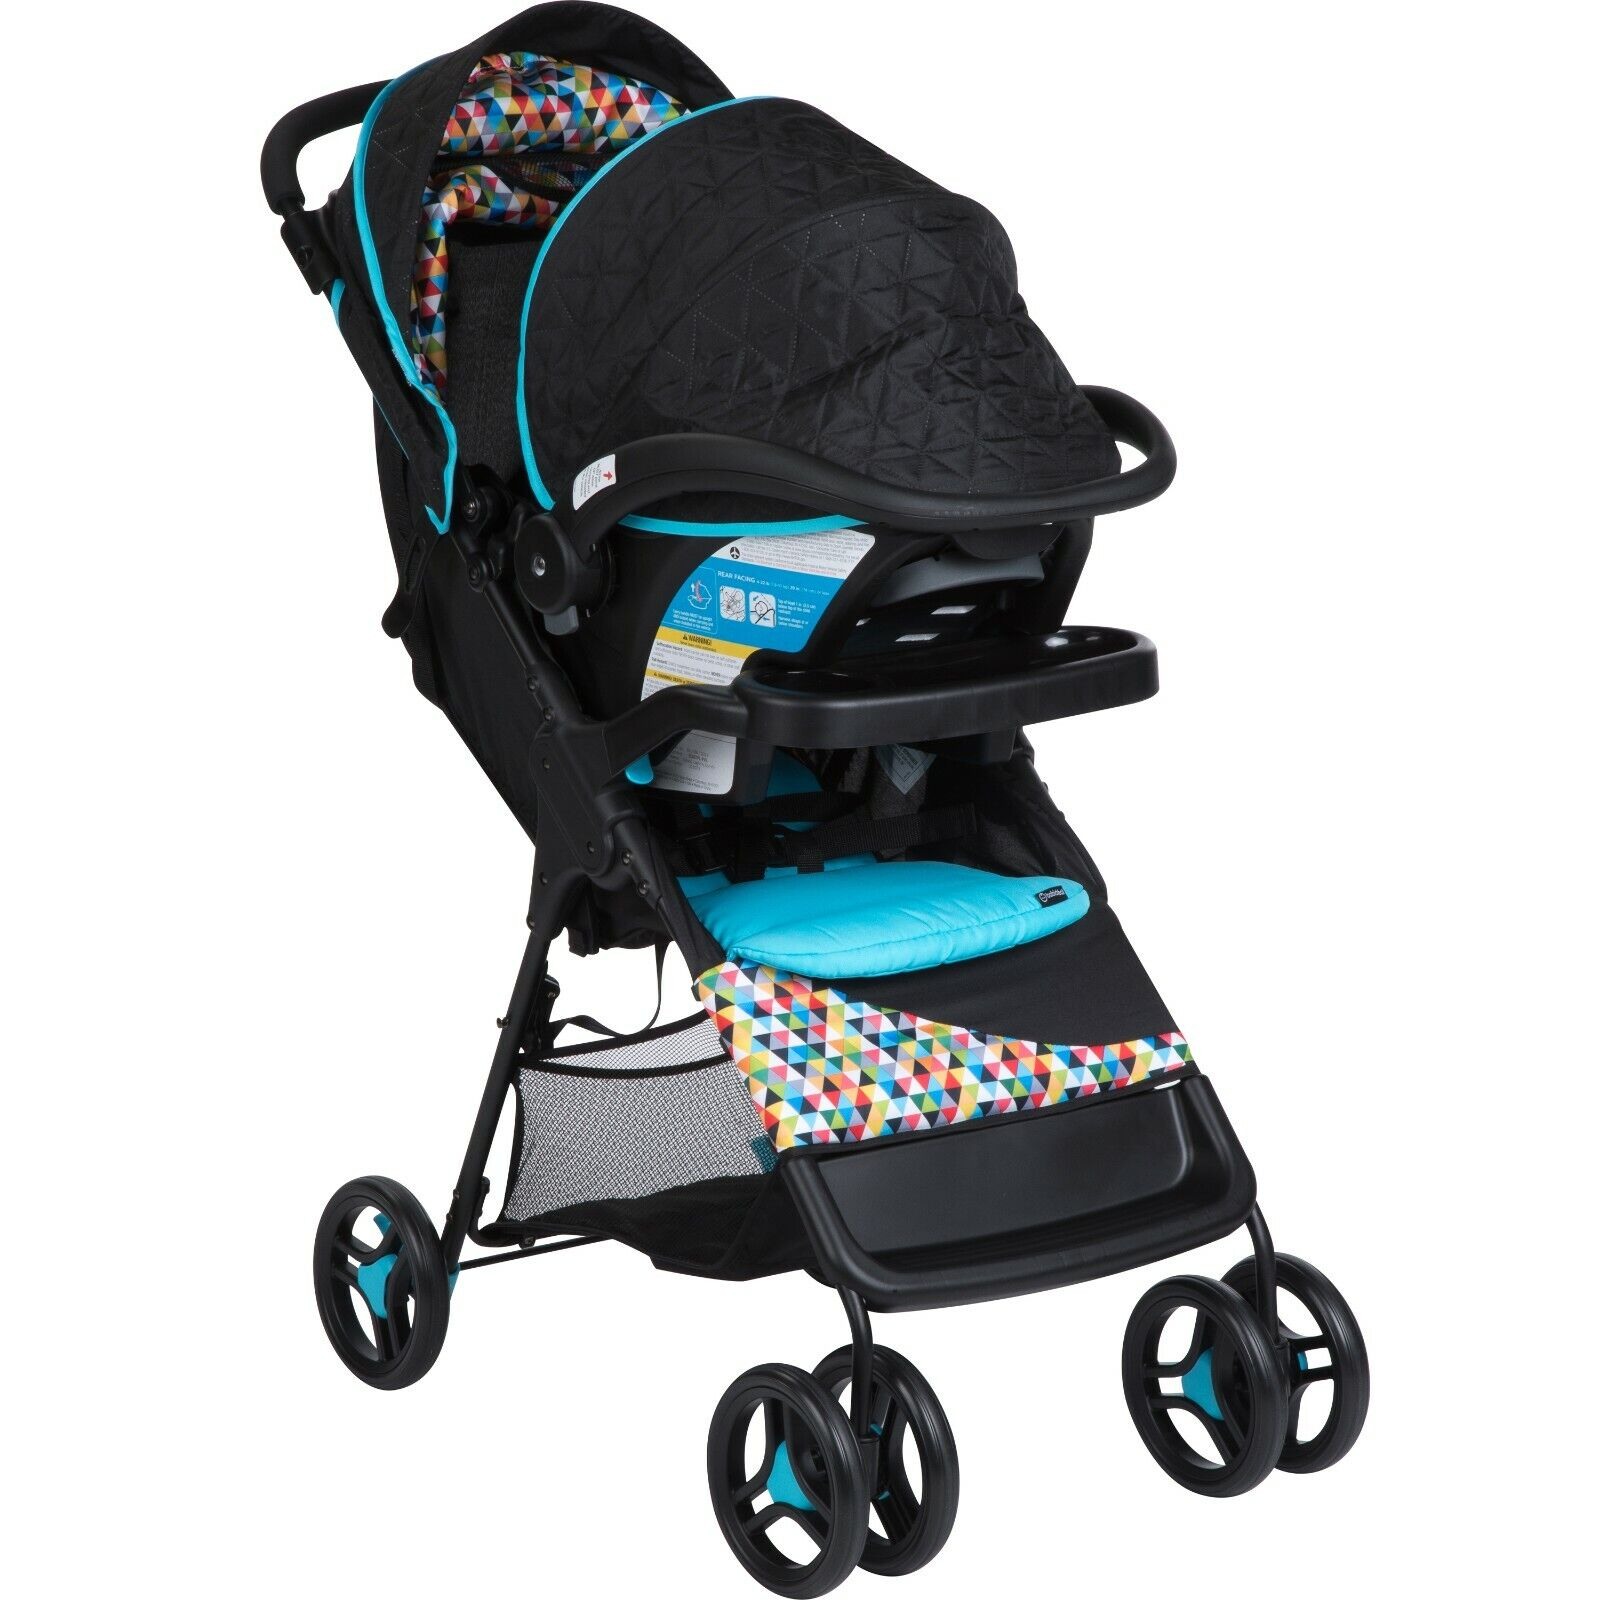 Baby Stroller With Car Seat Infant Comfort Walker Travel System Deluxe Seat Pad - $100.00